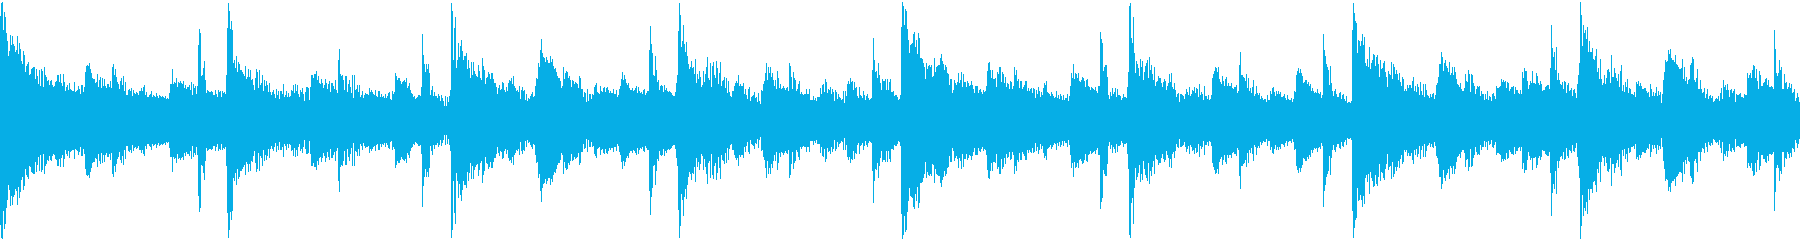 A happy and uplif...'s reproduced waveform